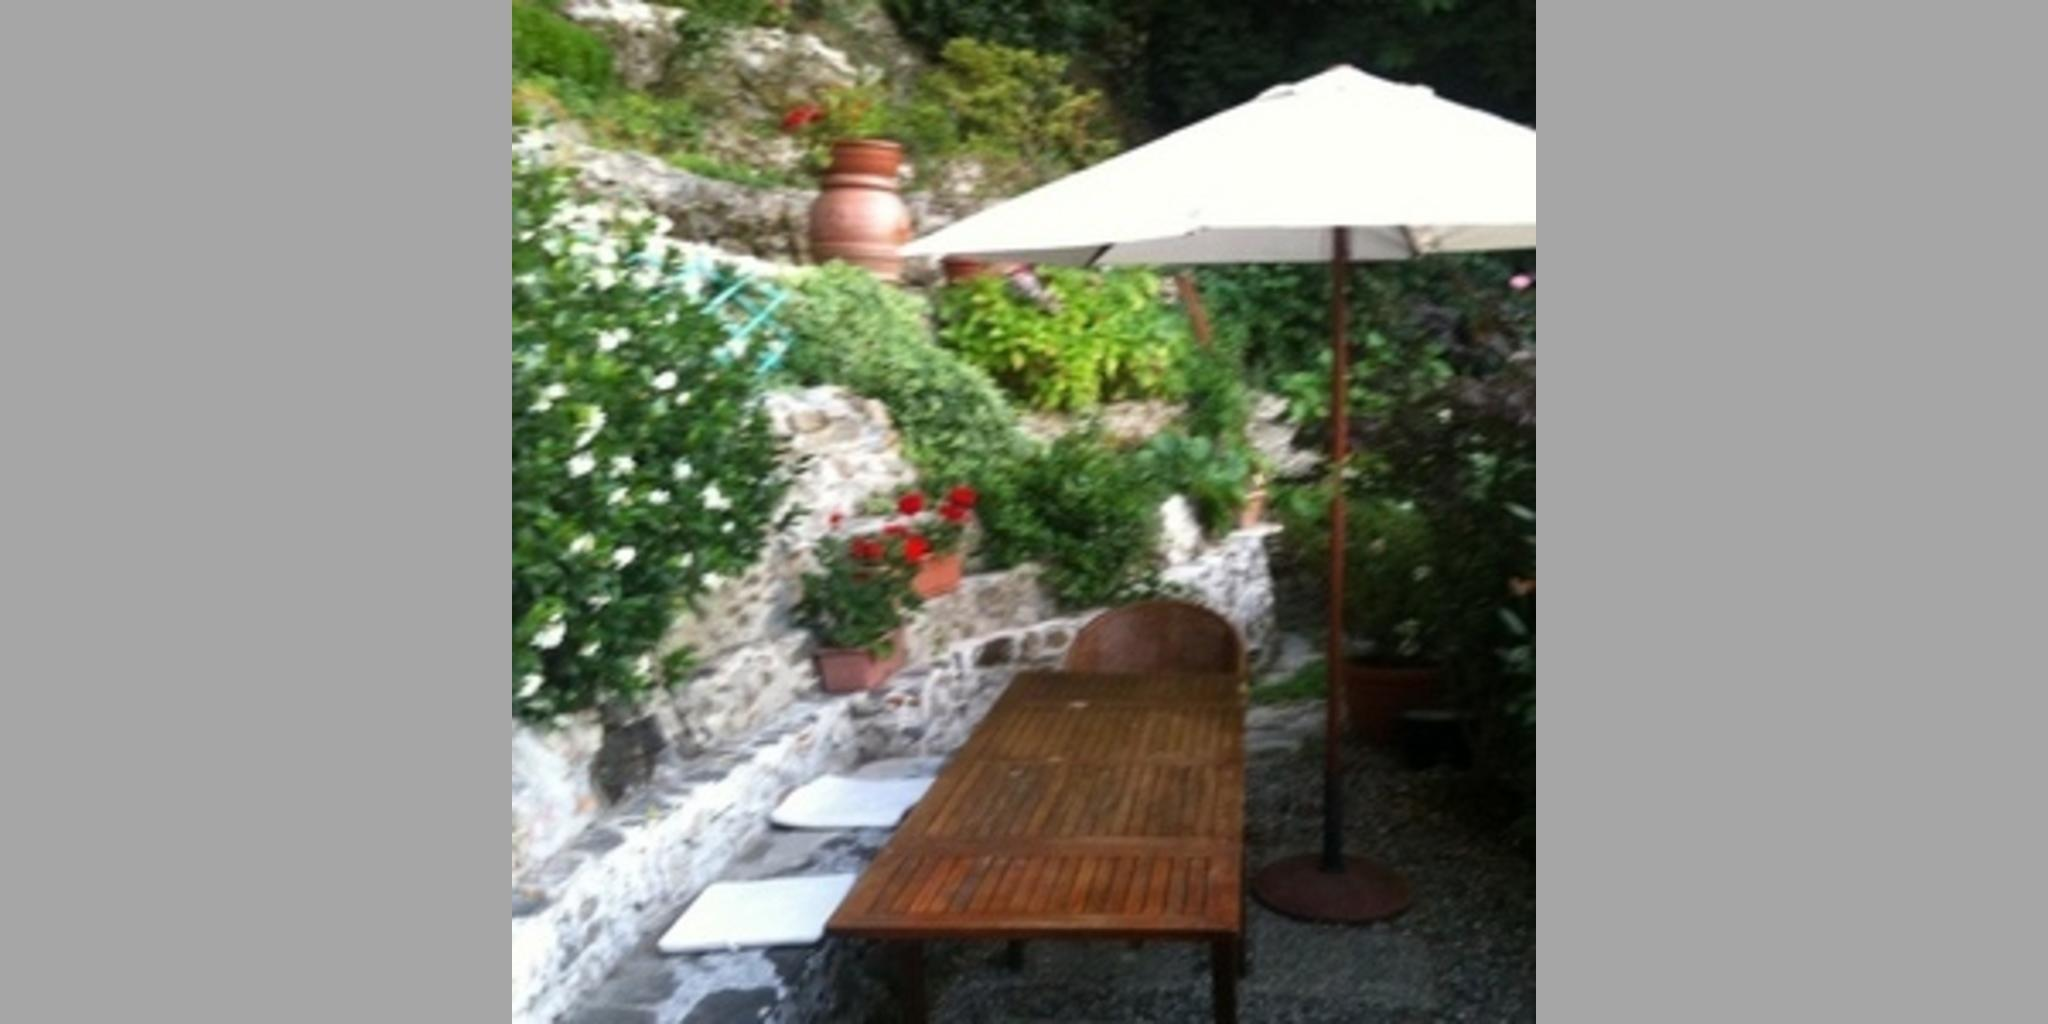 Bed & Breakfast Gallicano - Gallicano_Trassilico